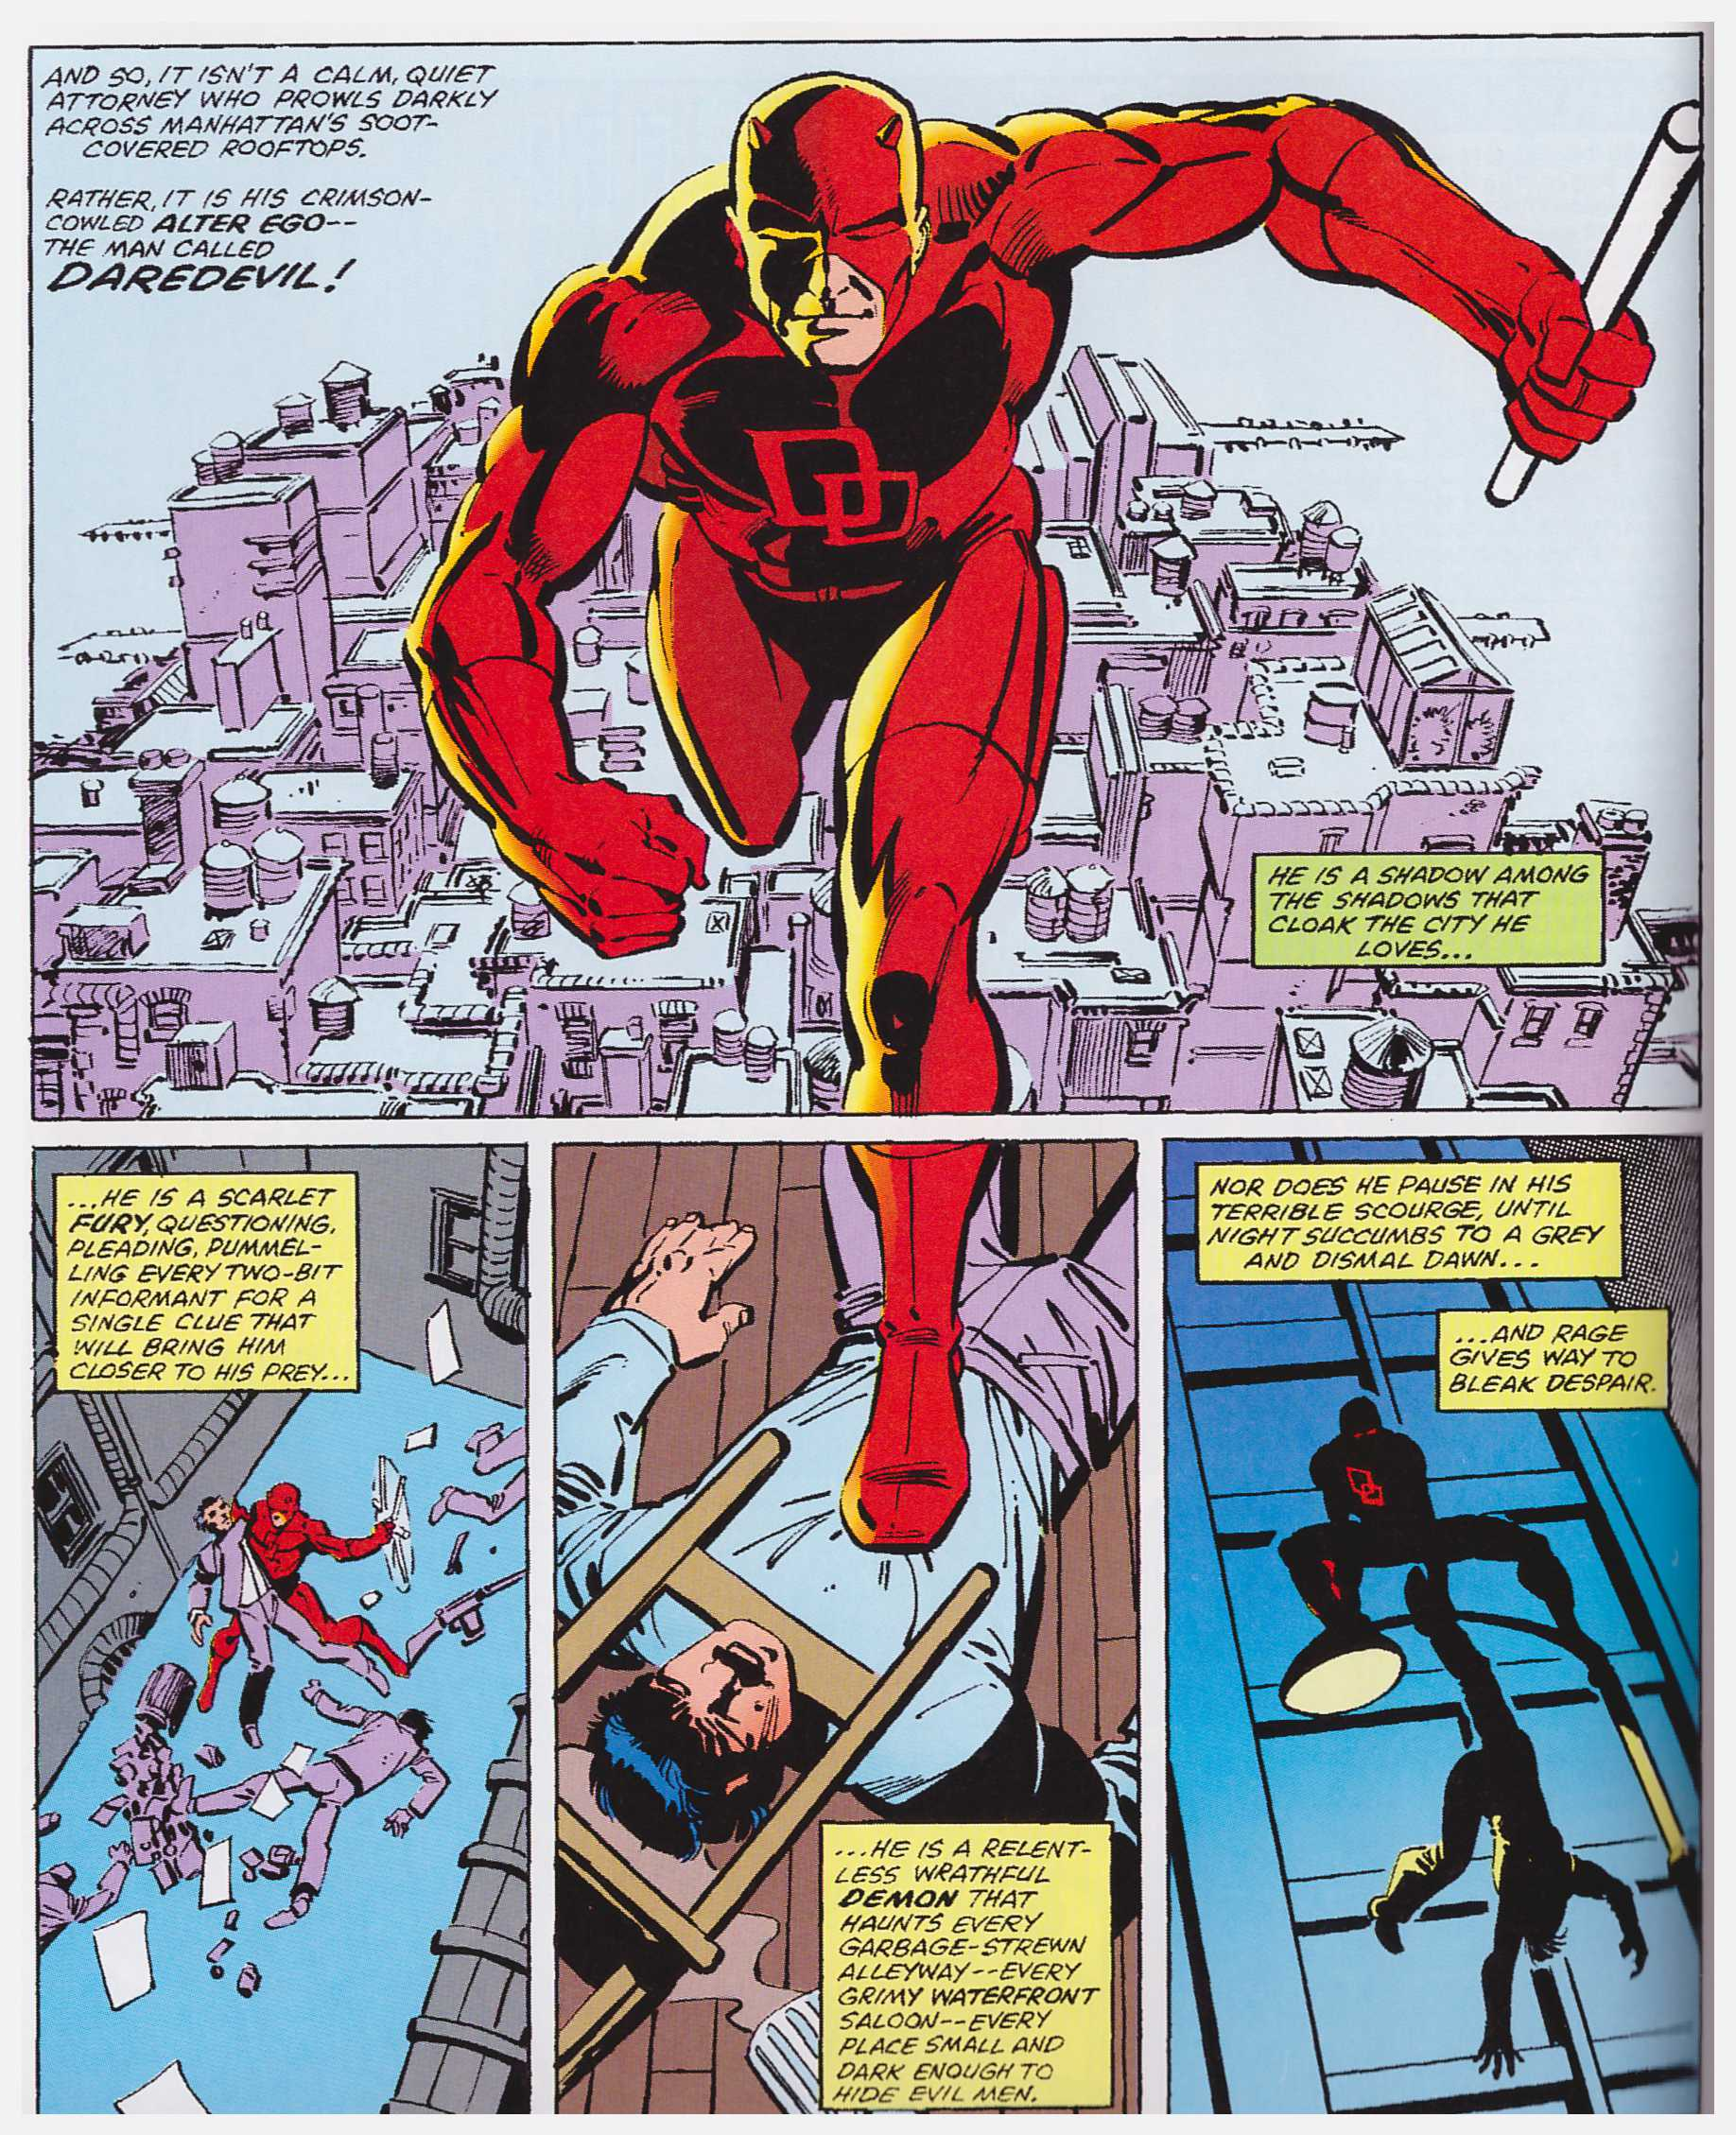 Daredevil by Frank Miller & Klaus Janson volume 2 review